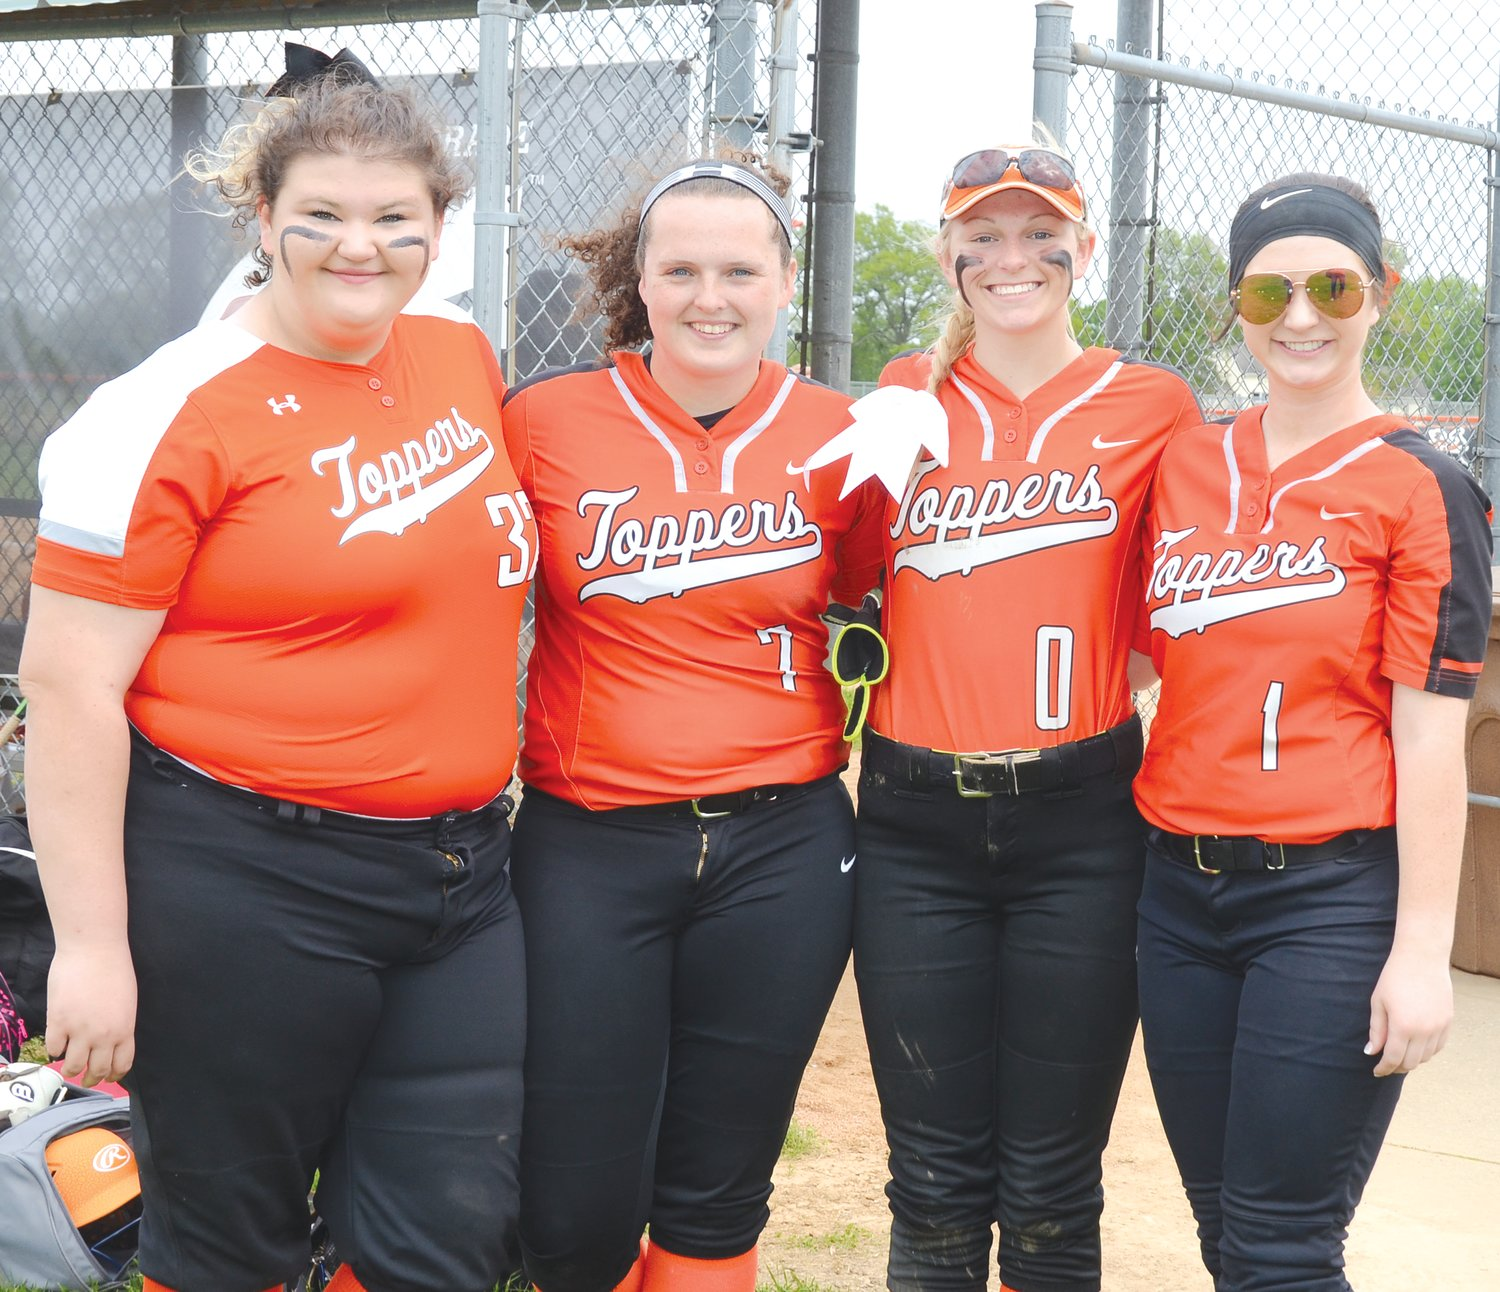 The four senior members of the Hillsboro High School softball team were honored on senior night prior to the start of the Lady Hiltoppers' 2-0 win over Southwestern that clinched the South Central Conference championship with a 9-0 record. From the left are Jaylaan Milanos, Kai Hanner, Katie Schaake and Sheridan Lyerla.